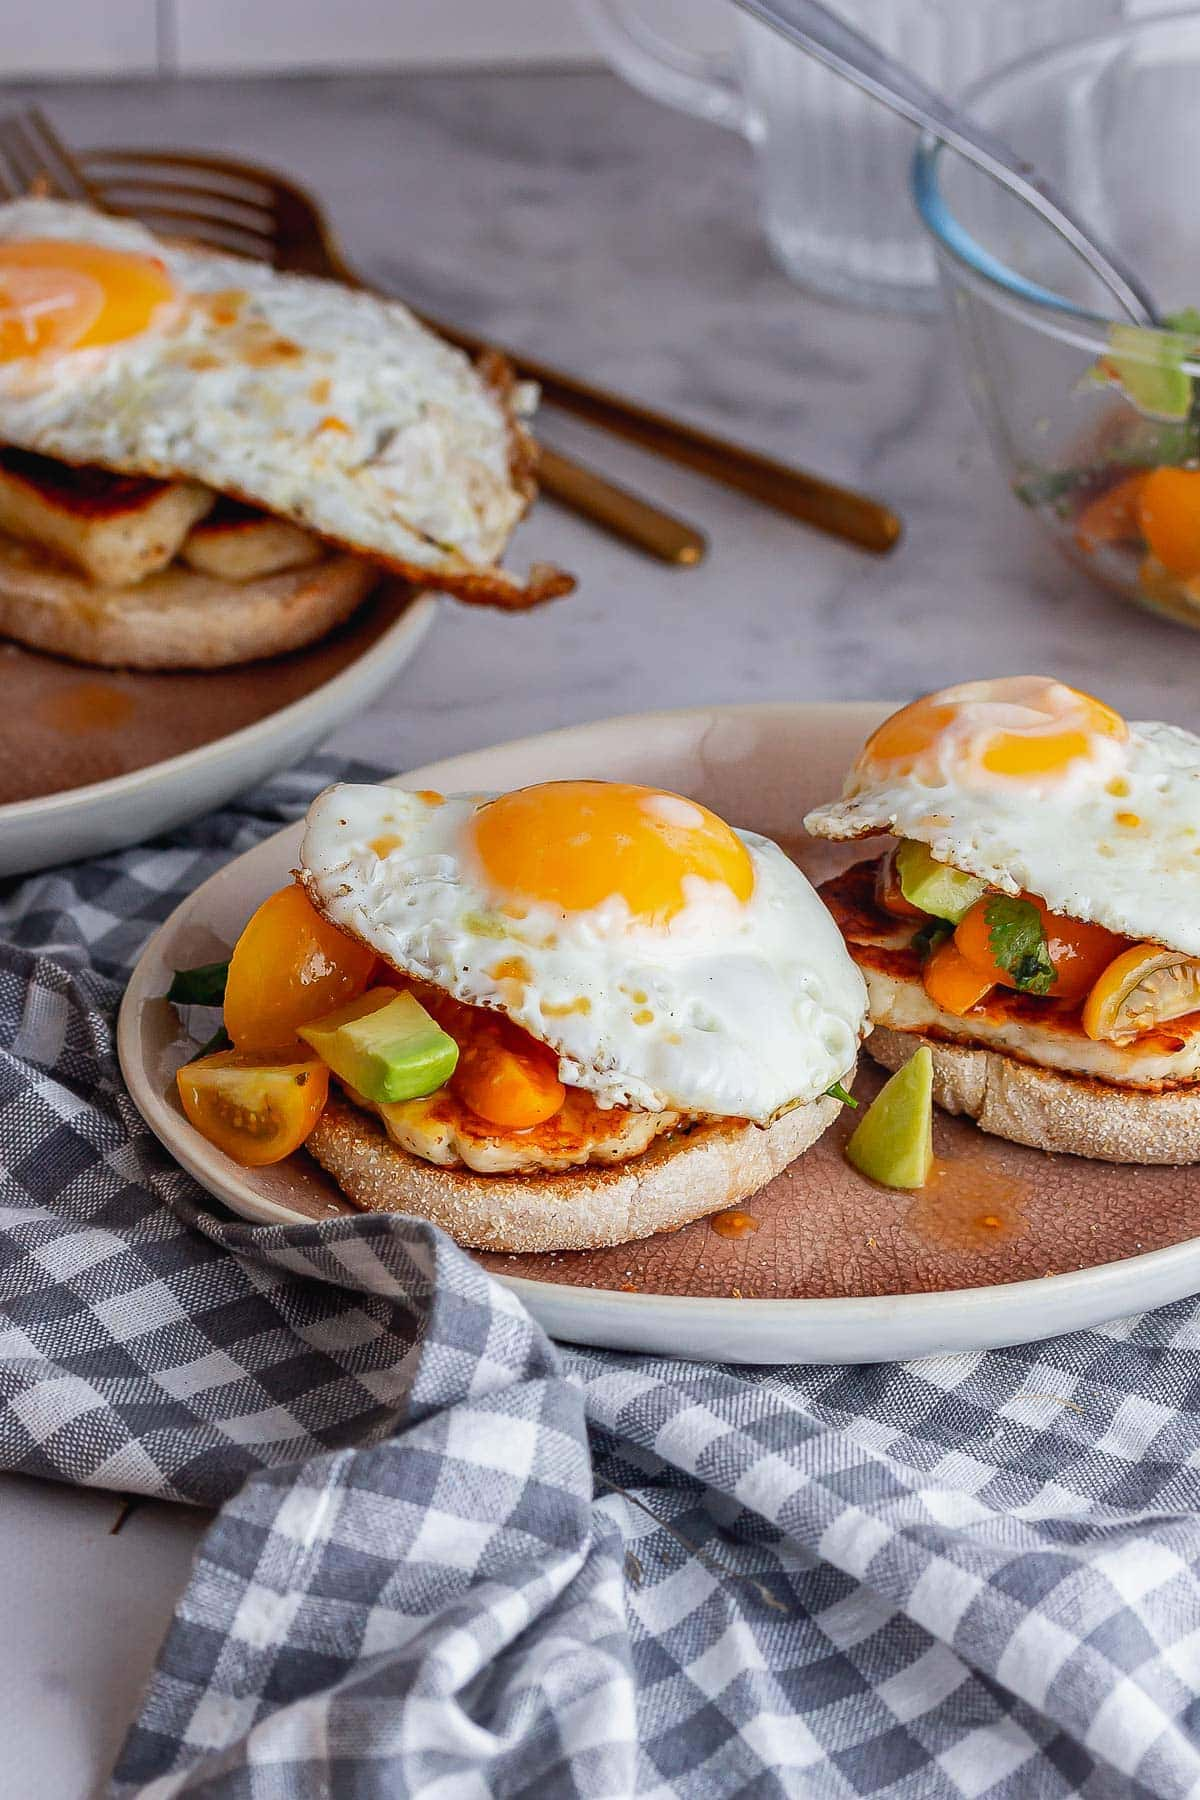 Halloumi muffins with eggs on a checked cloth